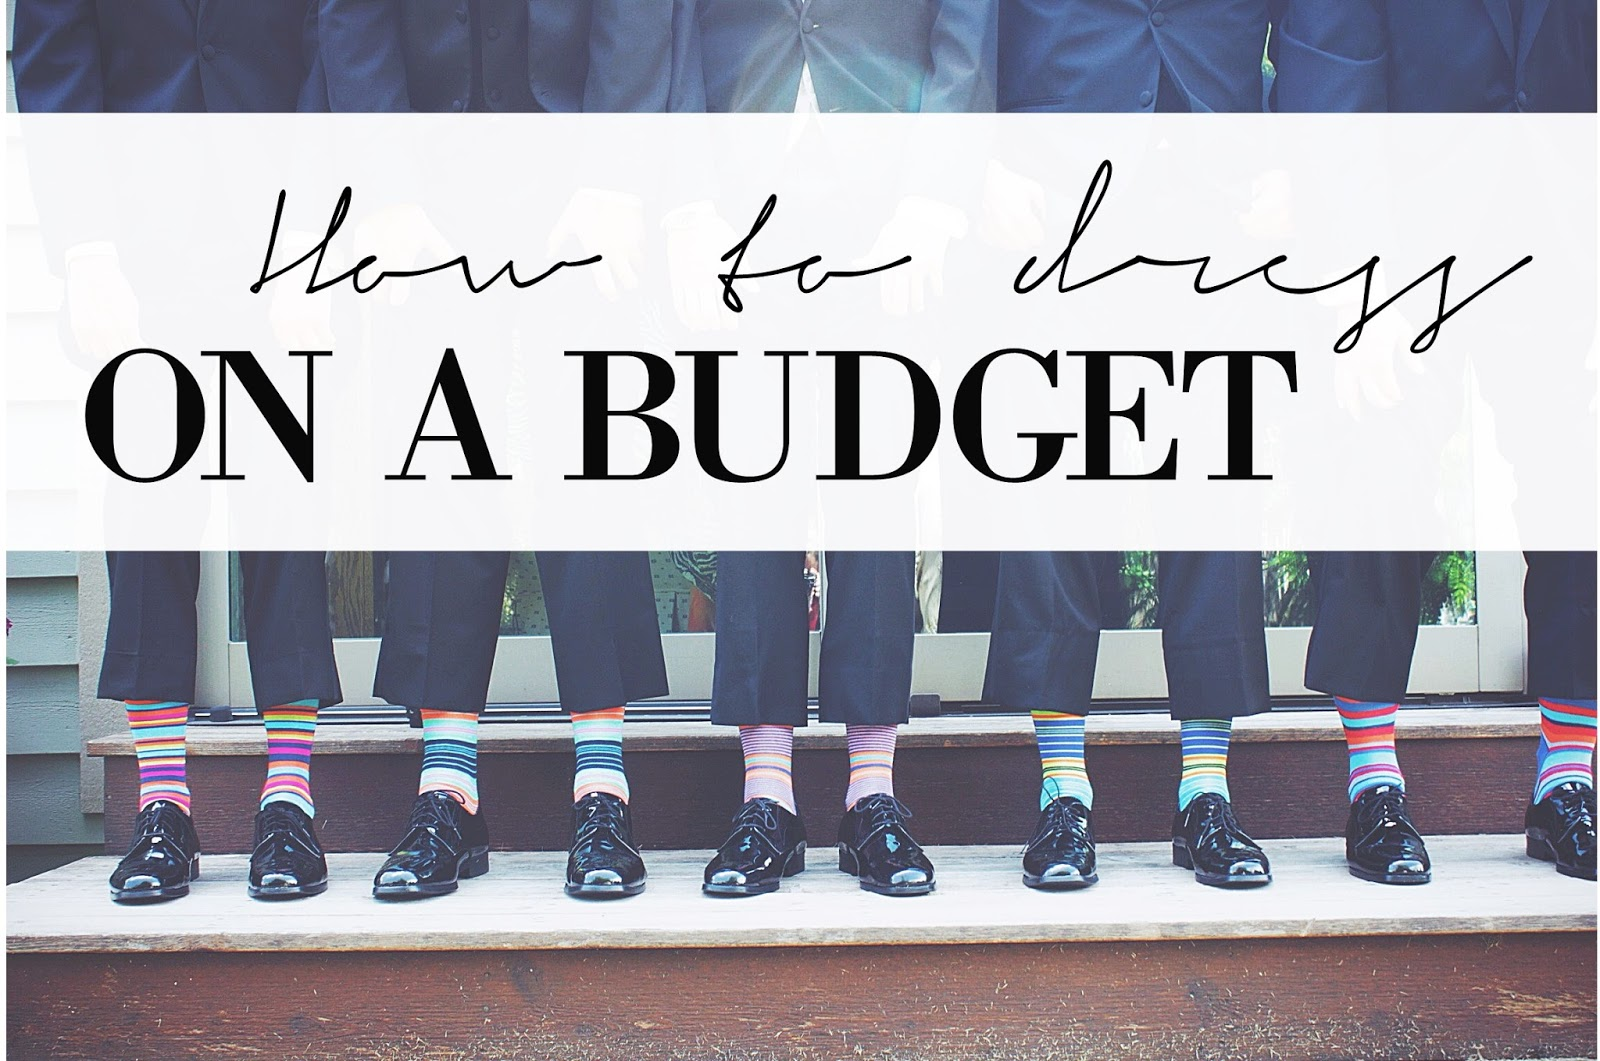 Dressing on a budget for a formal event